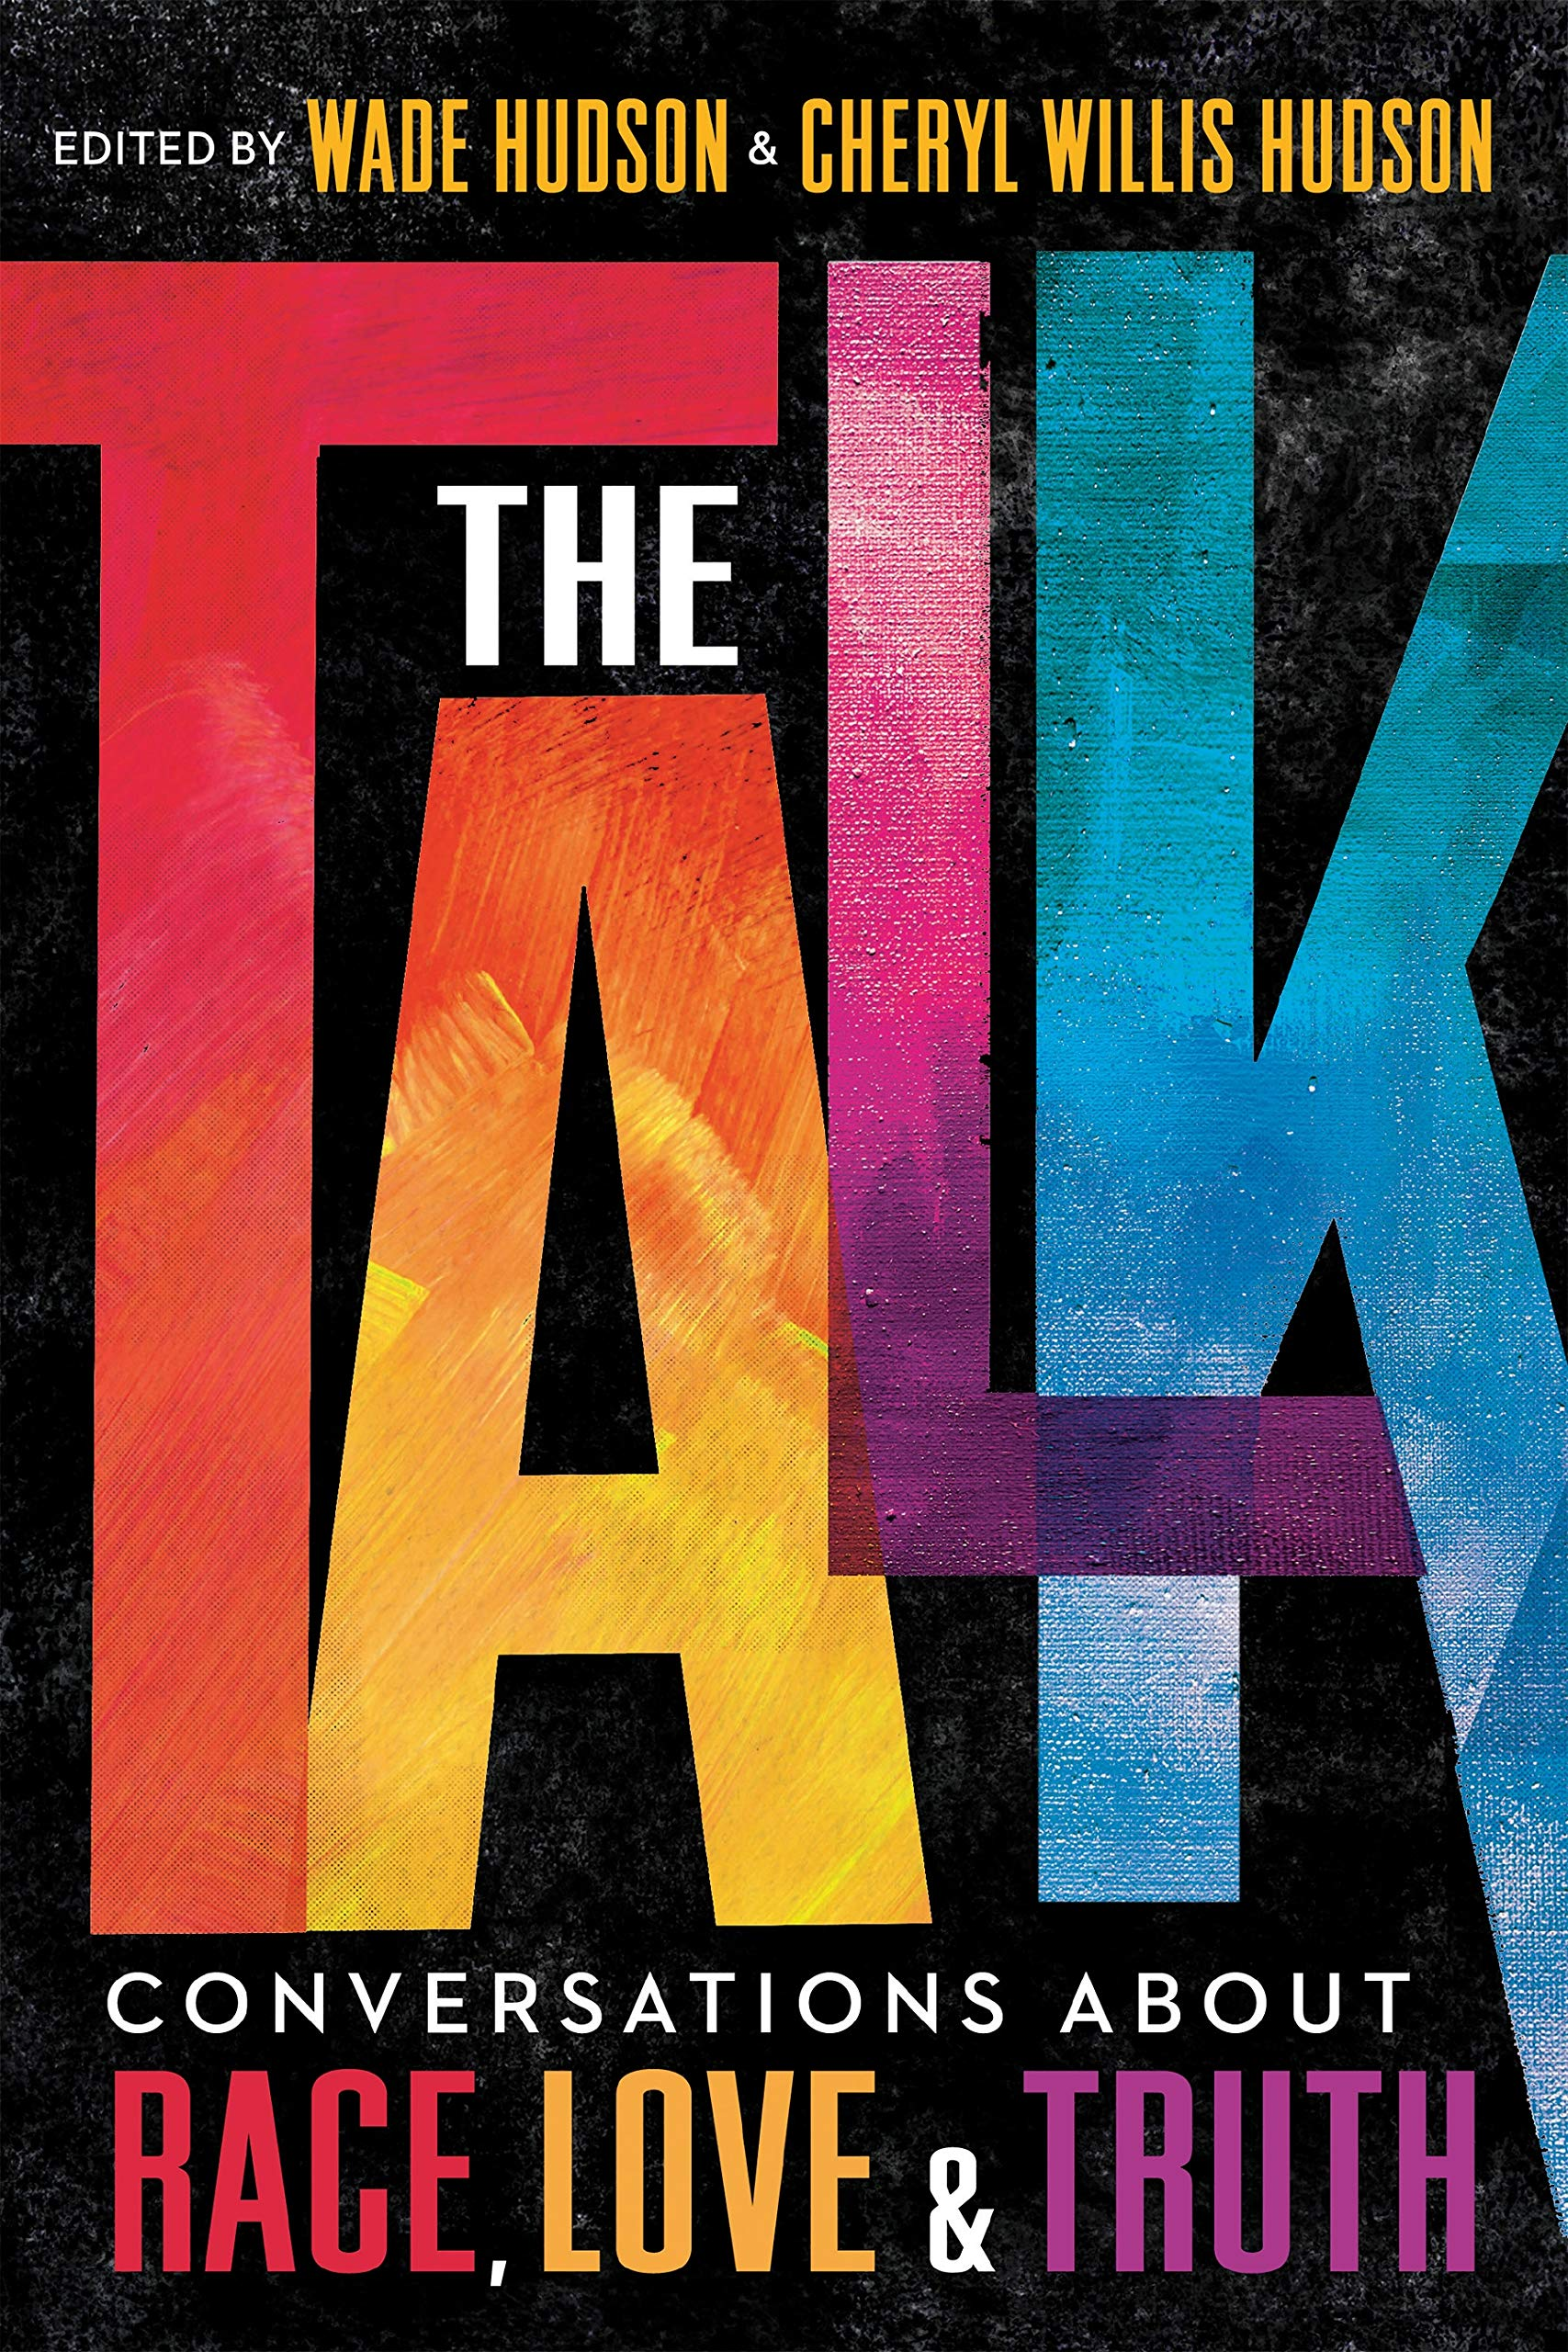 The Talk: Conversations About Race, Love & Truth by Wade Hudson and Cheryl Willis Hudson (ed.)